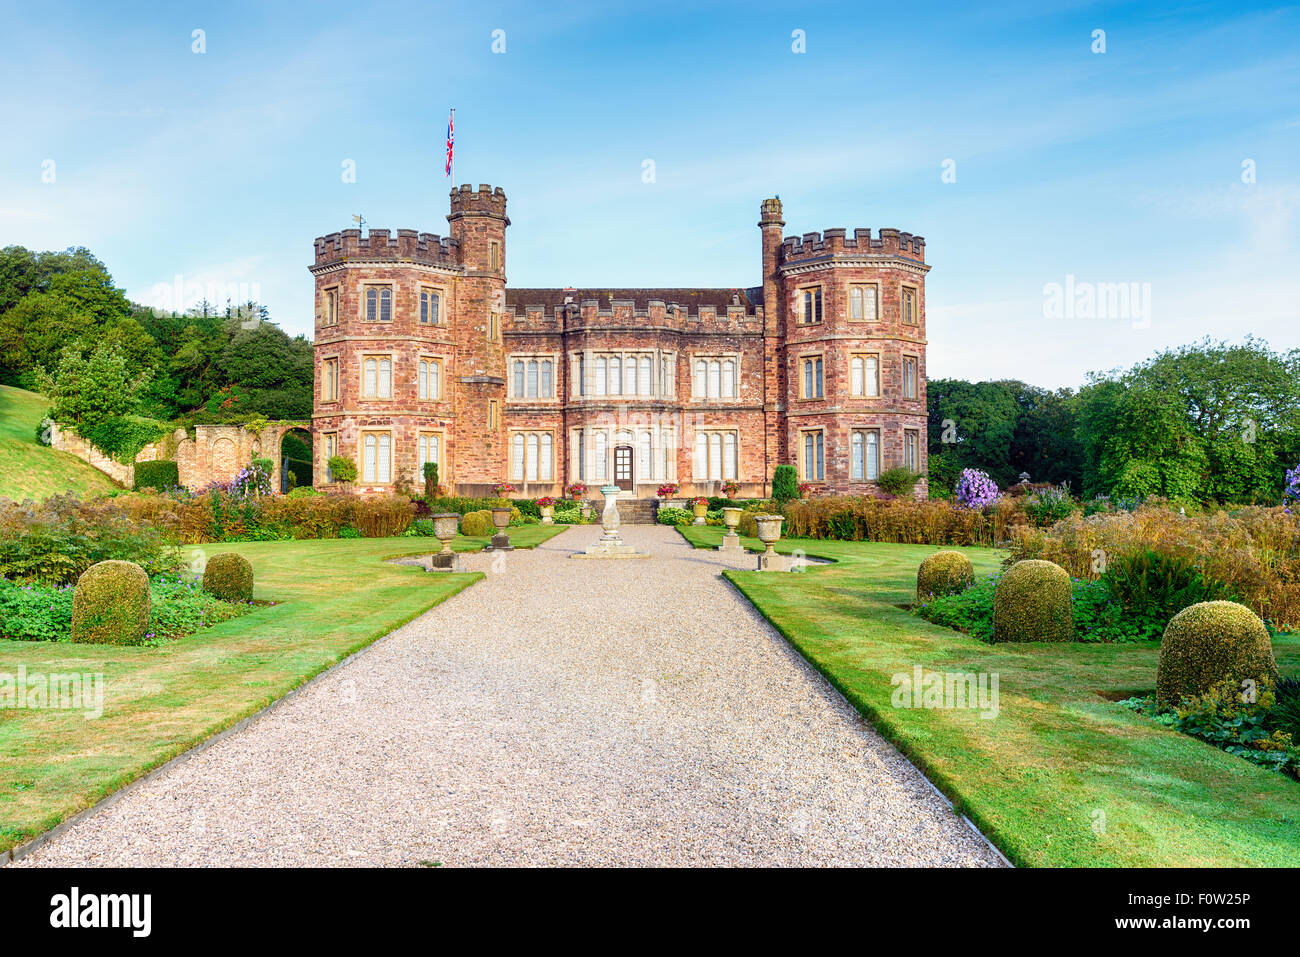 A stately home at Mount Edgcumbe in Cornwall - Stock Image